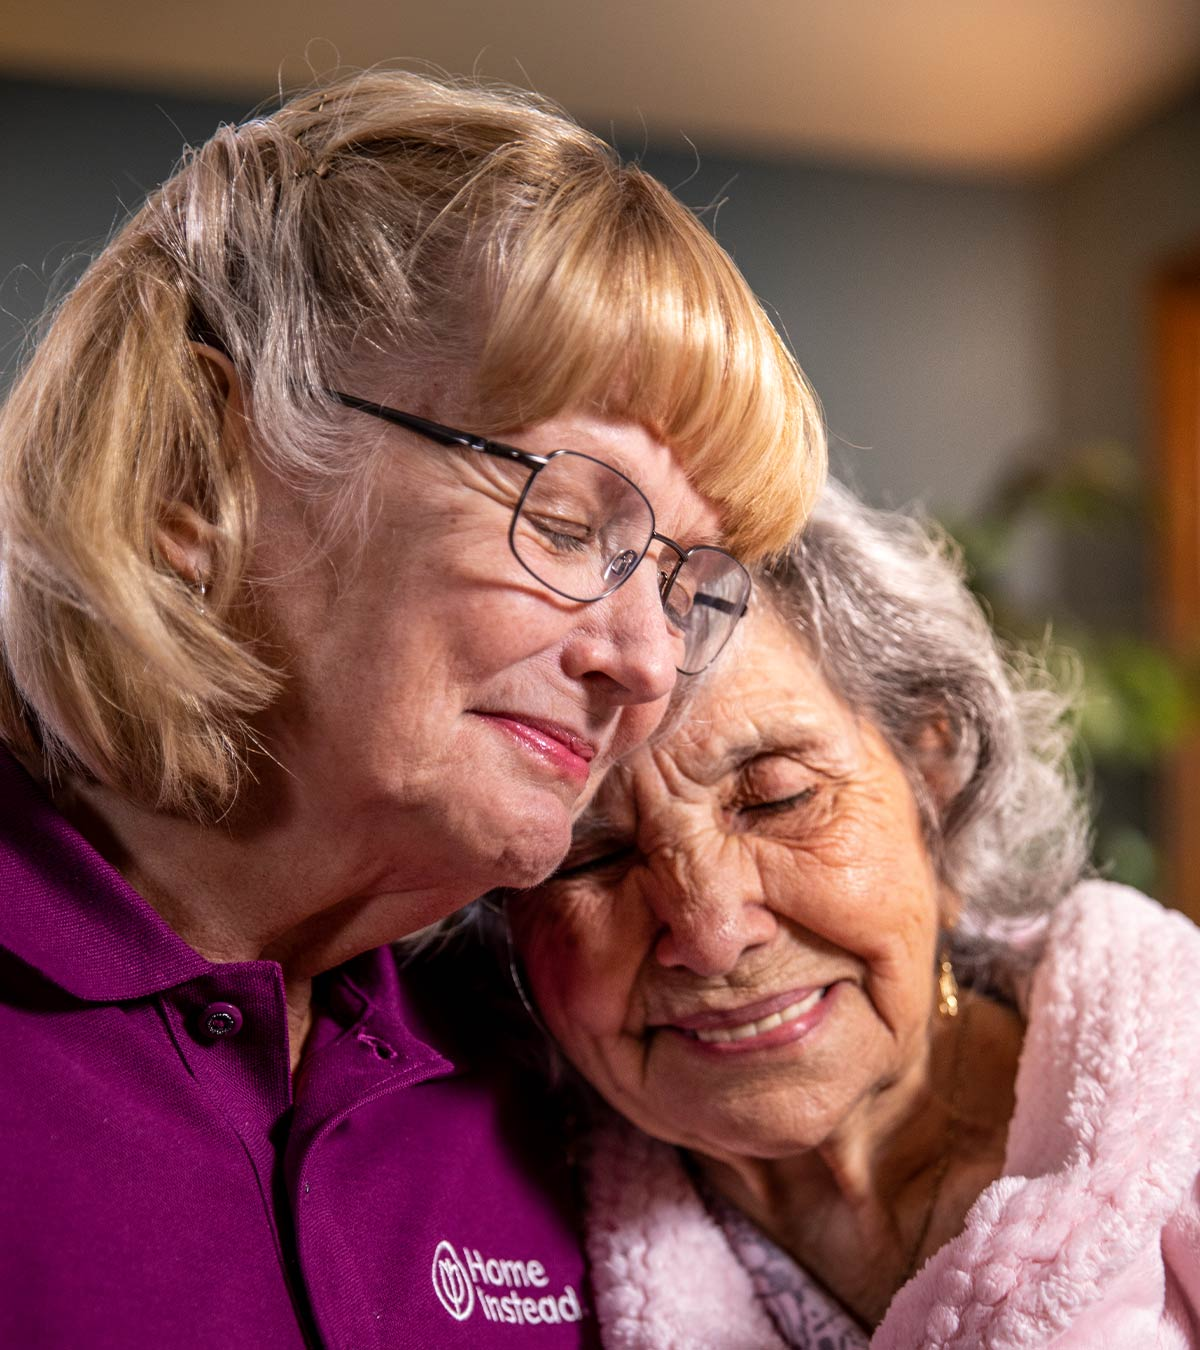 CAREGiver providing in-home senior care services. Home Instead of St. Augustine, FL provides Elder Care to aging adults.